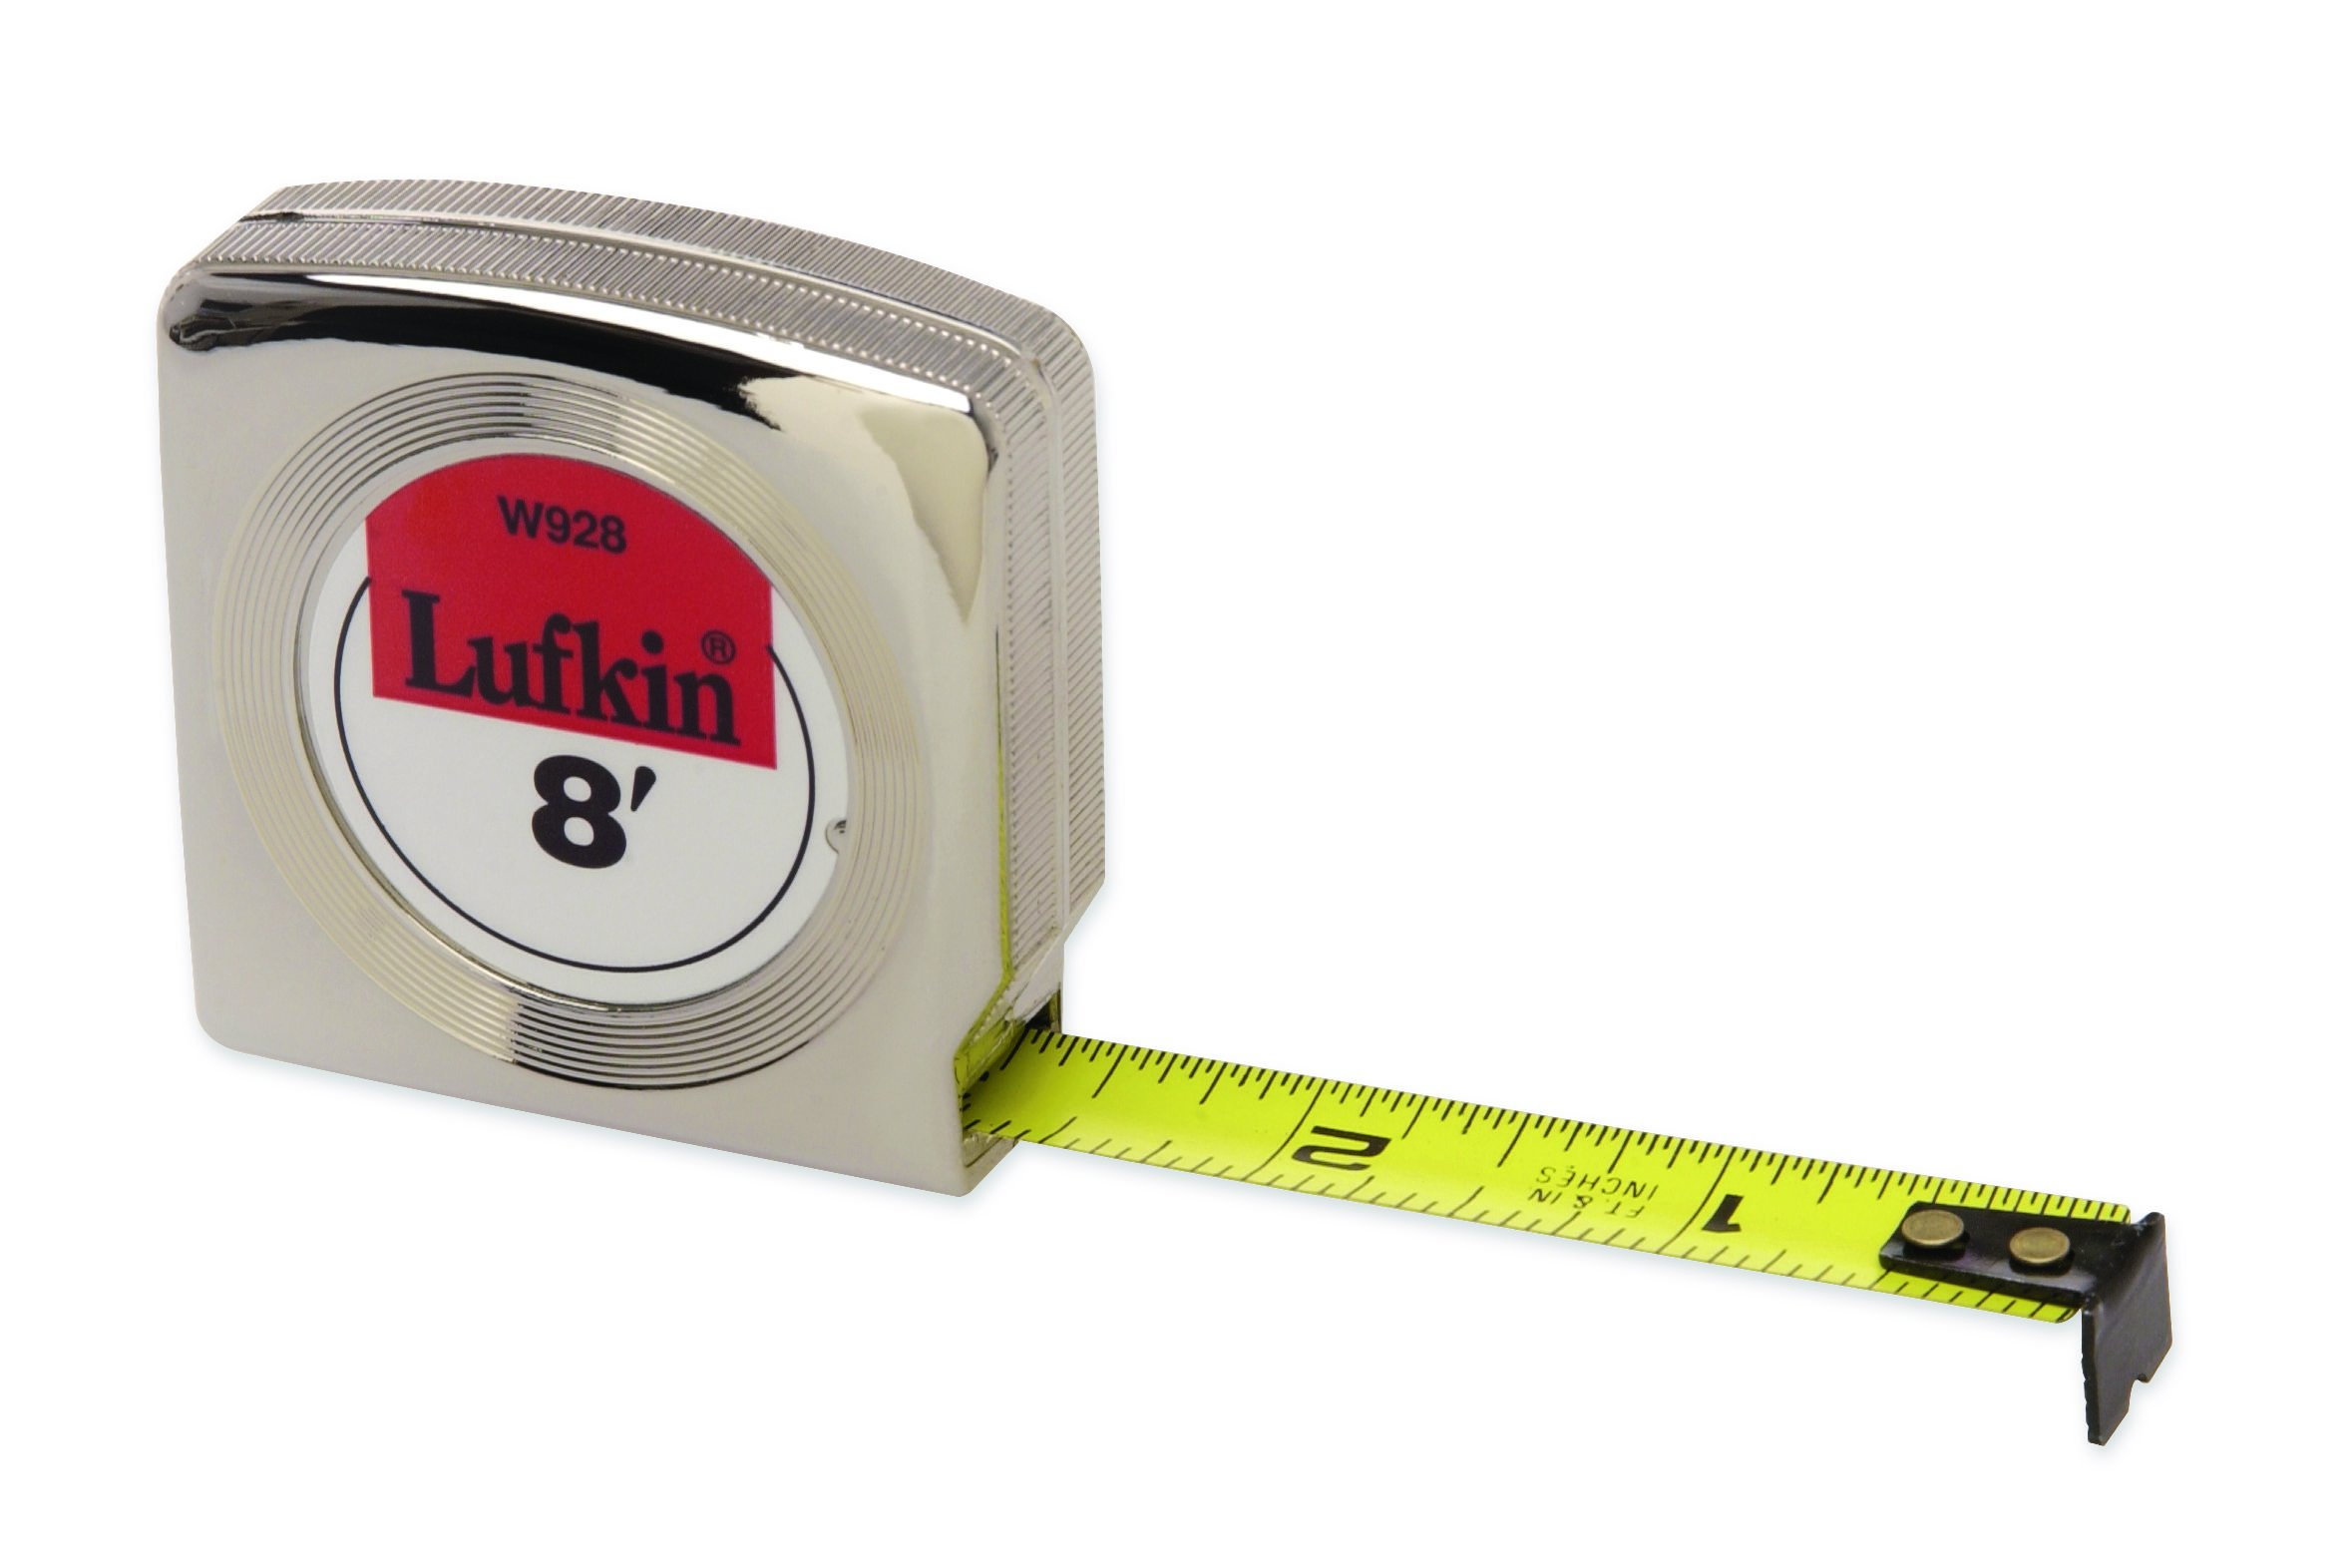 Mezurall Measuring Tapes Model Code: AC (part# W9210)